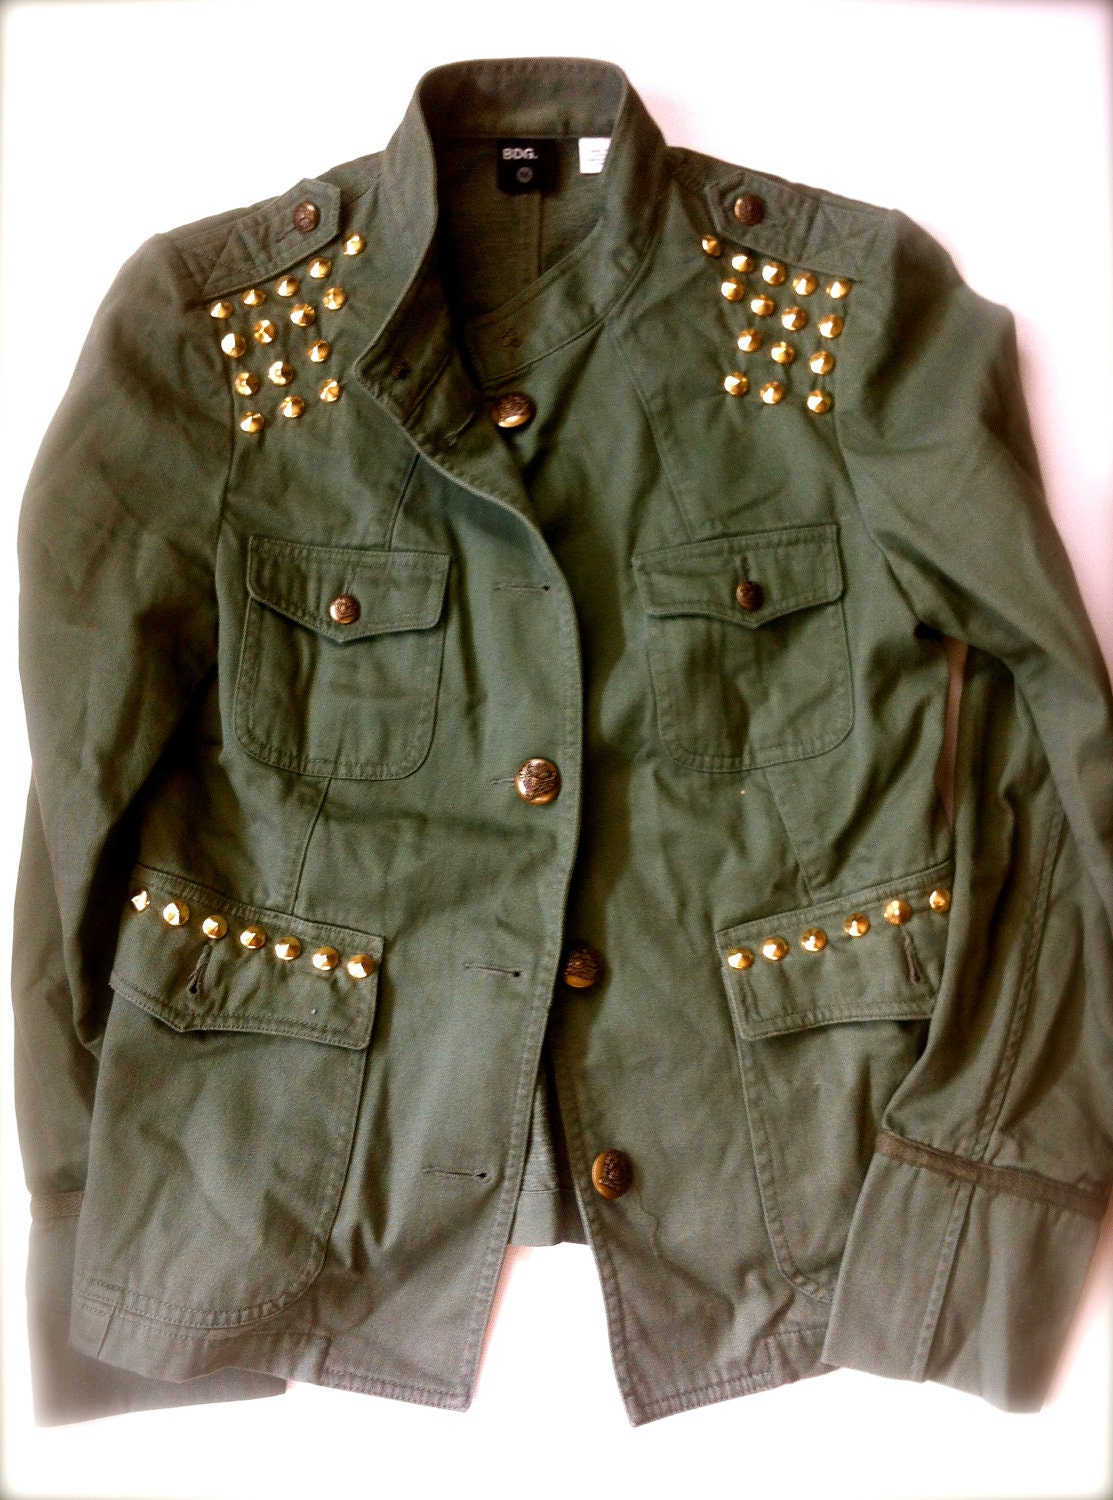 Buy Women's Army Green Waterproof Raincoats for Juniors, Lightweight Packable Long Rain Coat Jackets for Women, Active Outdoor Hooded Rain Coats, S-2XL at cripatsur.ga Menu. Free Grocery Pickup Reorder Items Track Orders. Departments See All. .